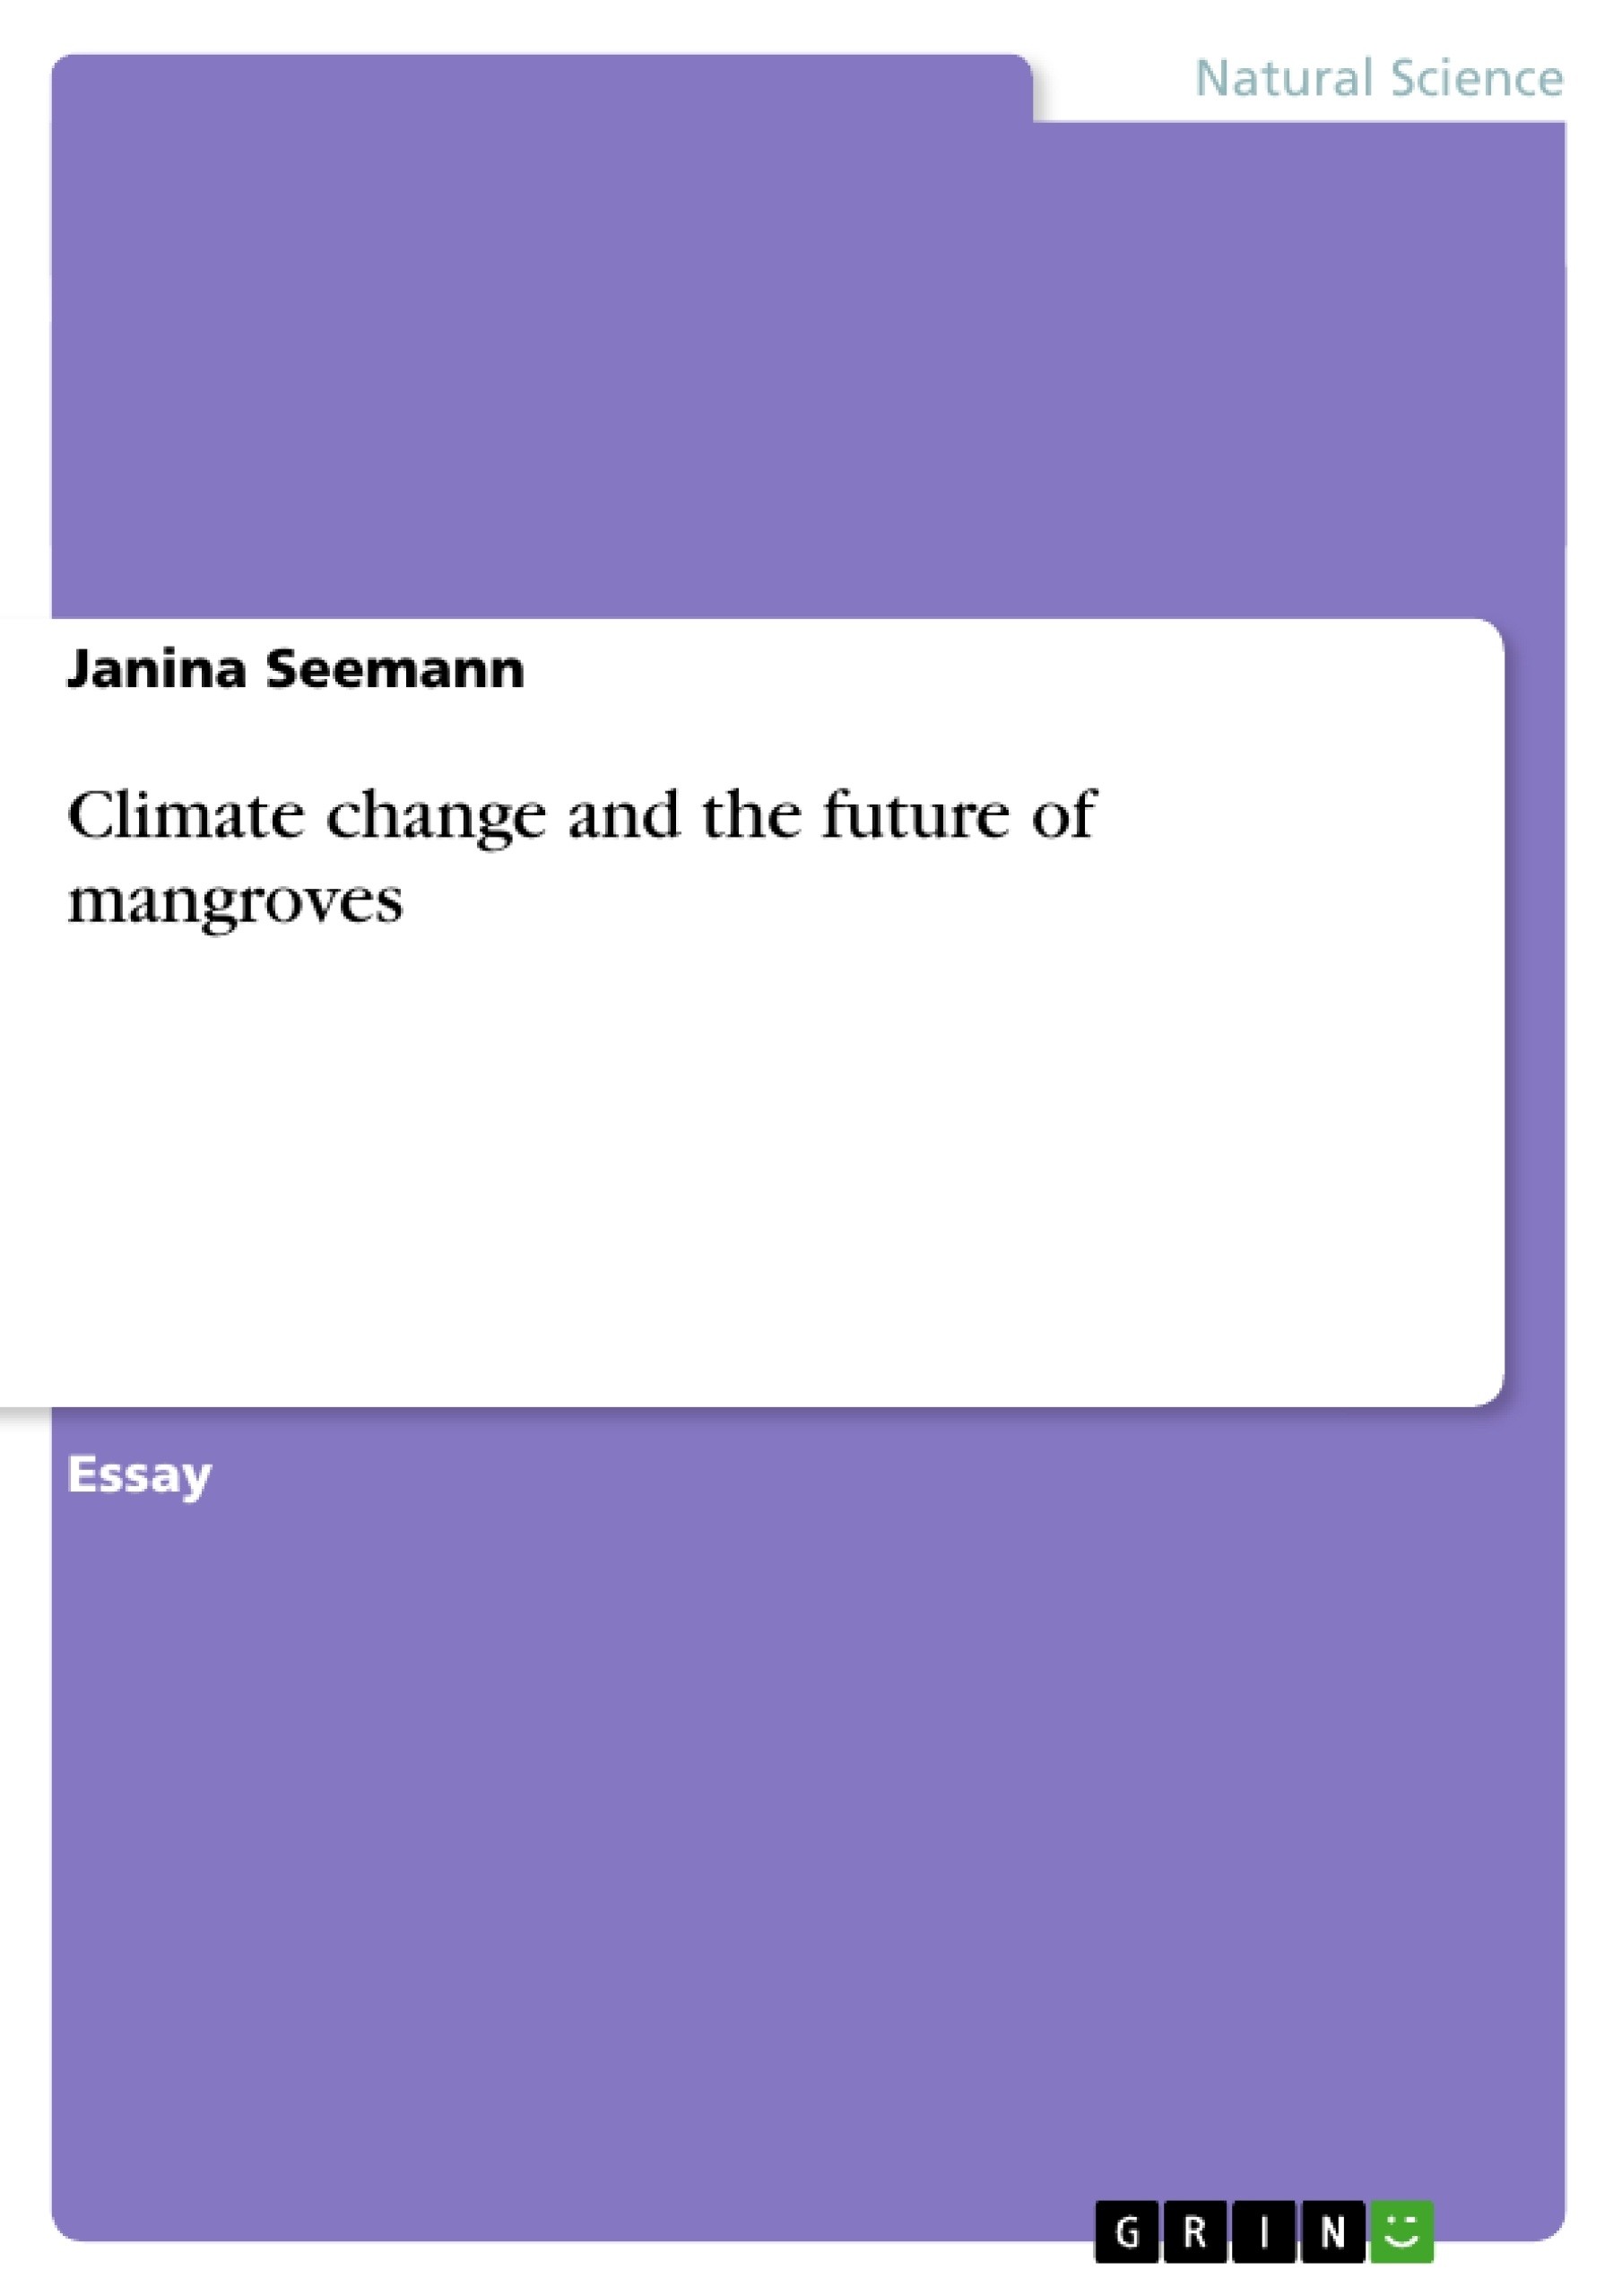 Title: Climate change and the future of mangroves